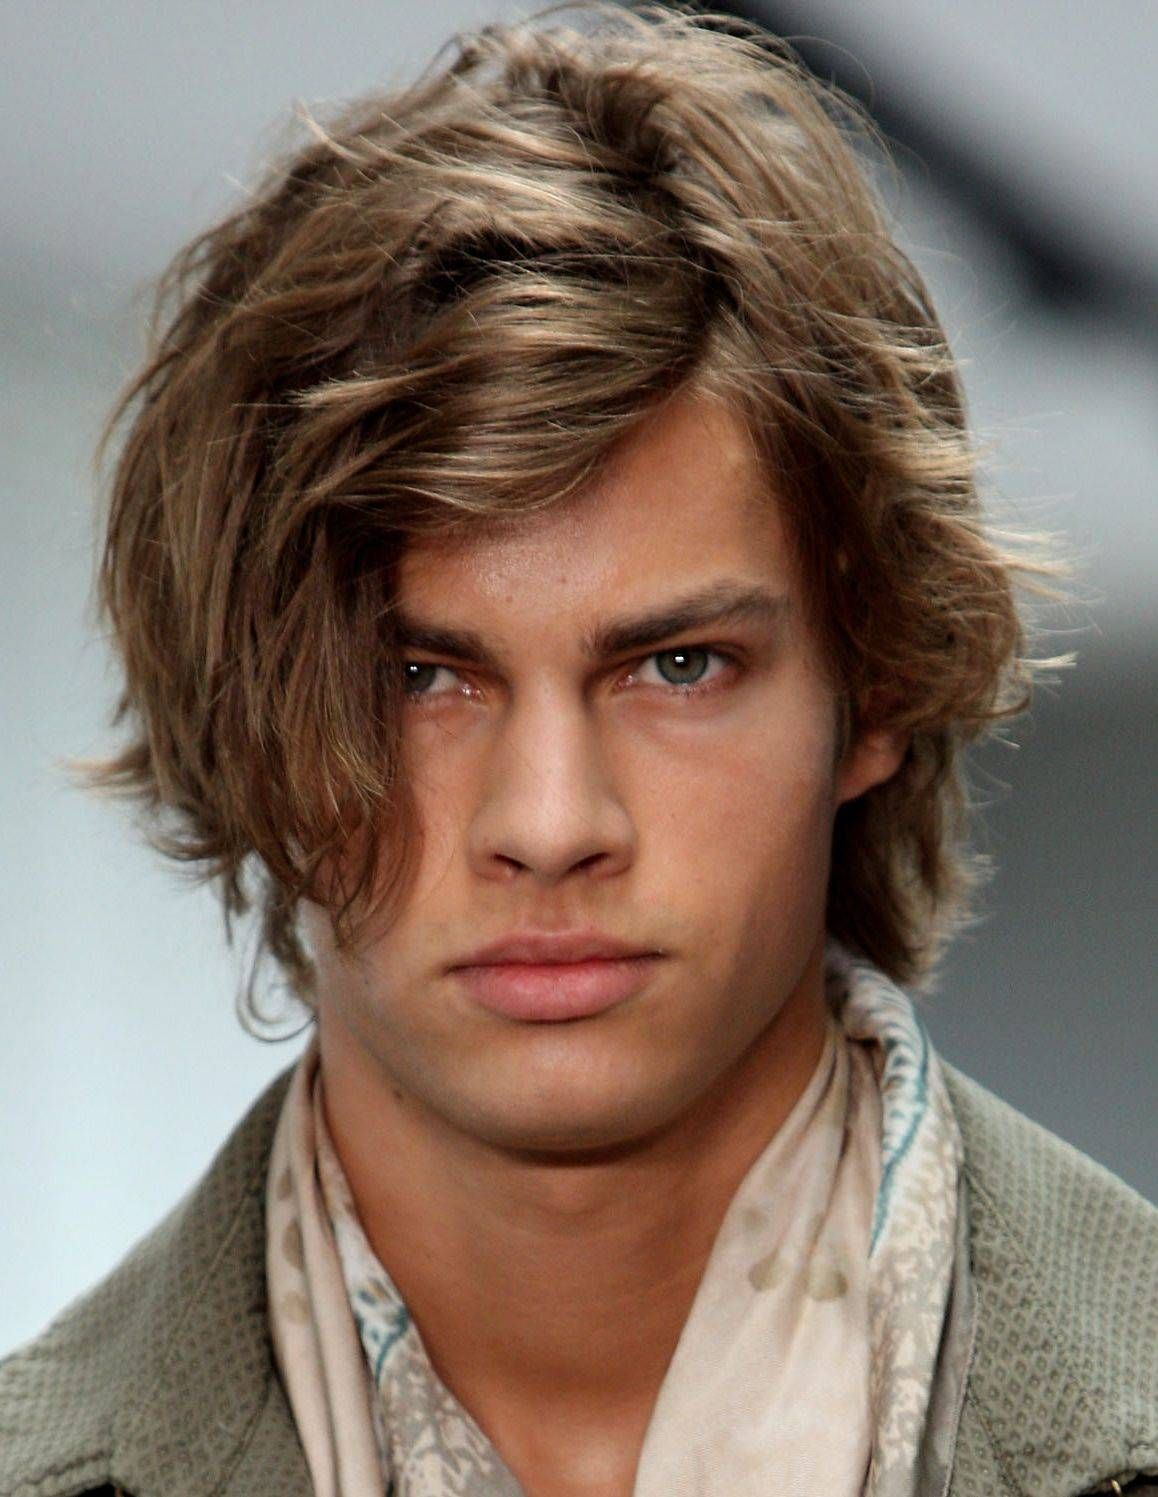 Hippie Hairstyles for Men-27 Best Hairstyles For A Hipster Look